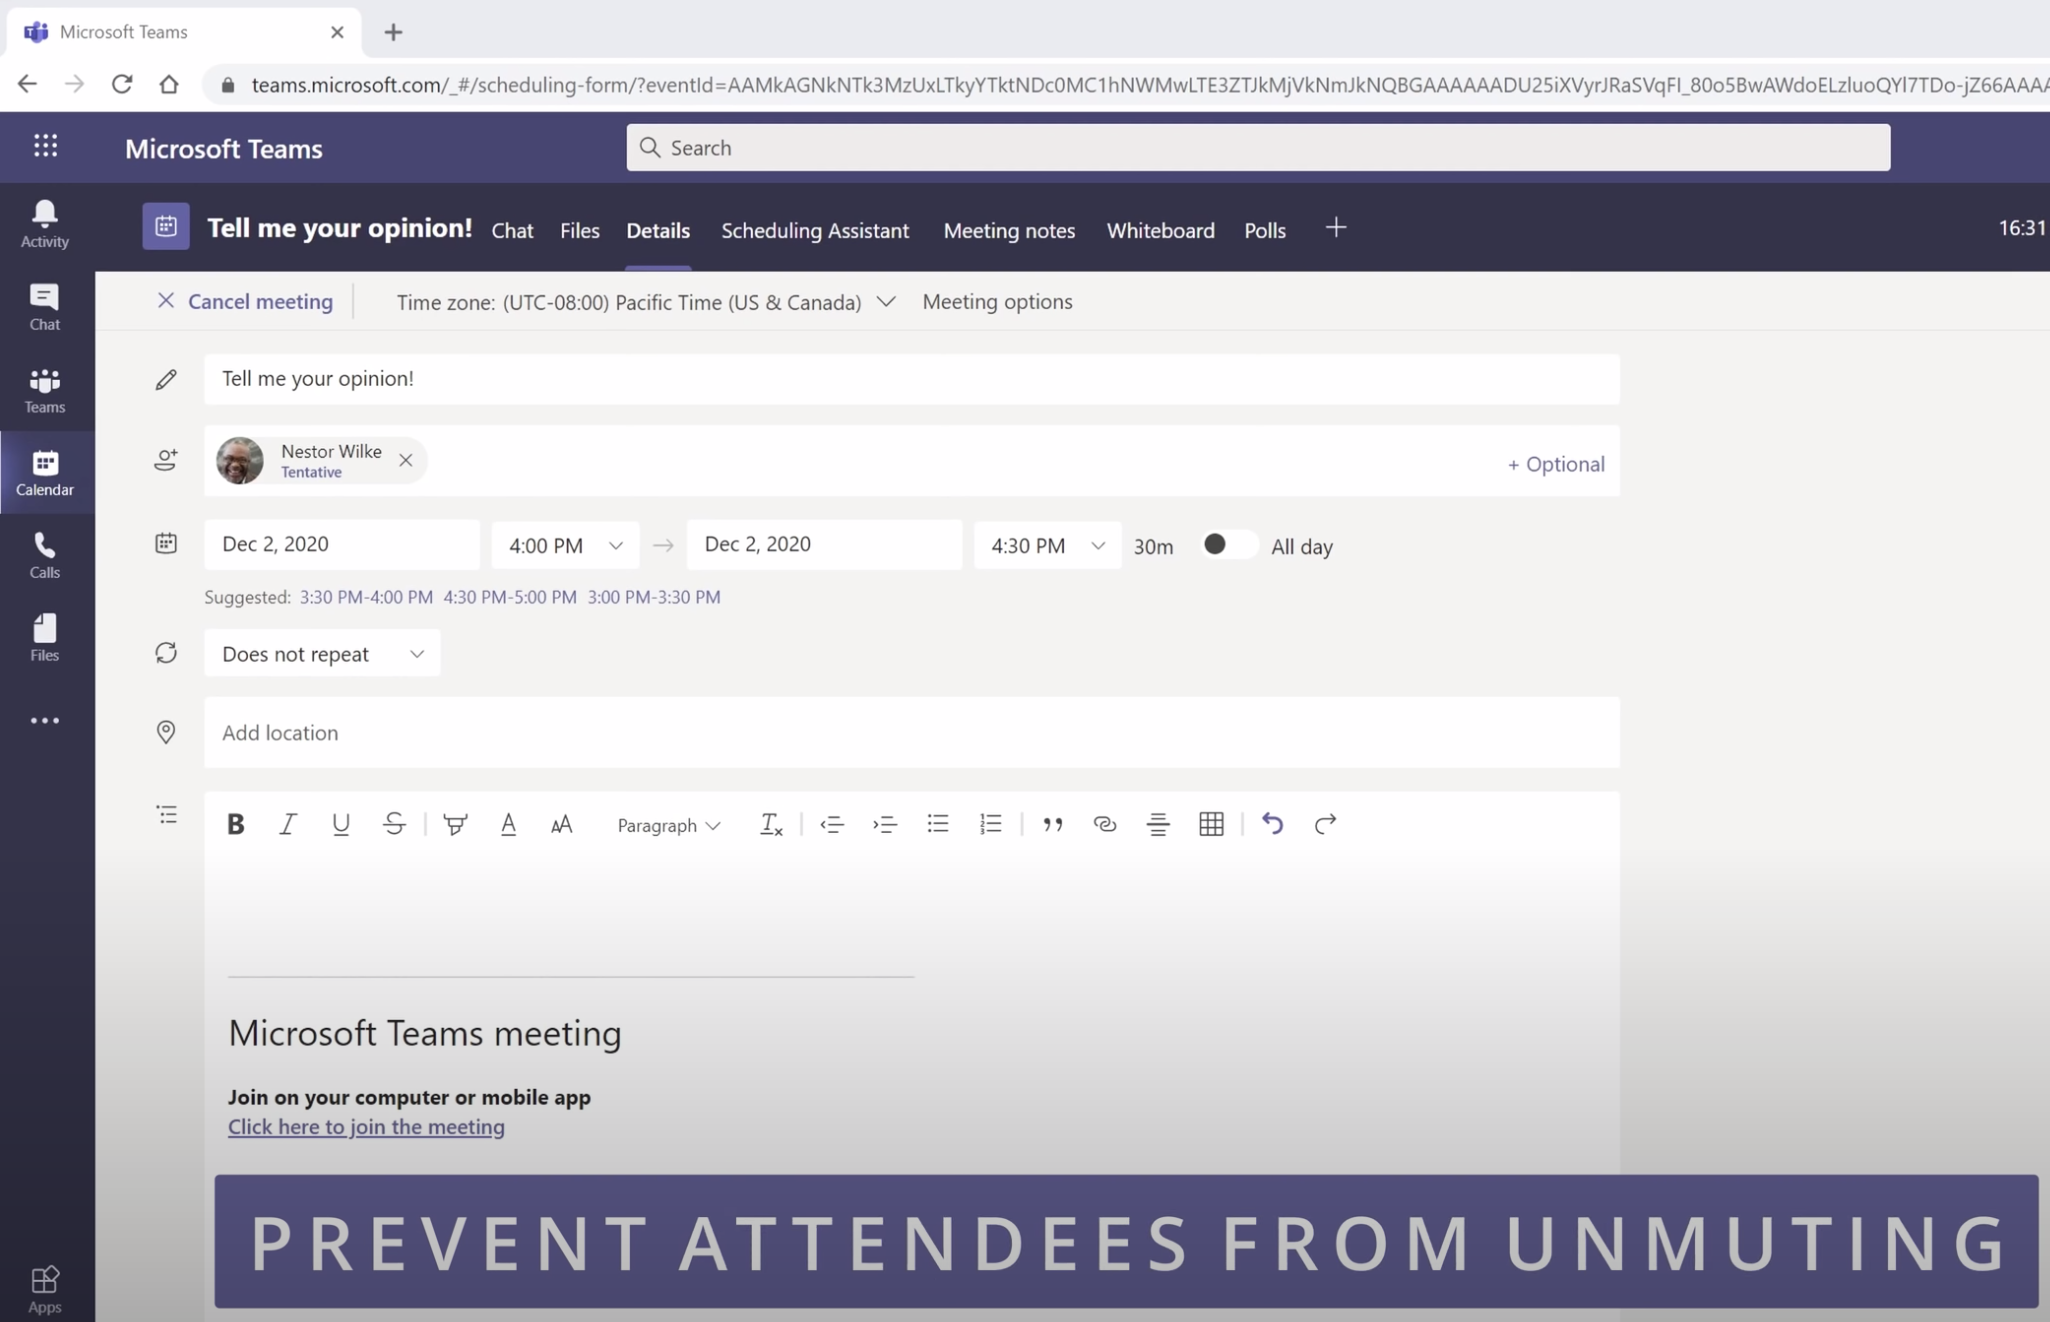 You can prevent attendees from unmuting themselves.